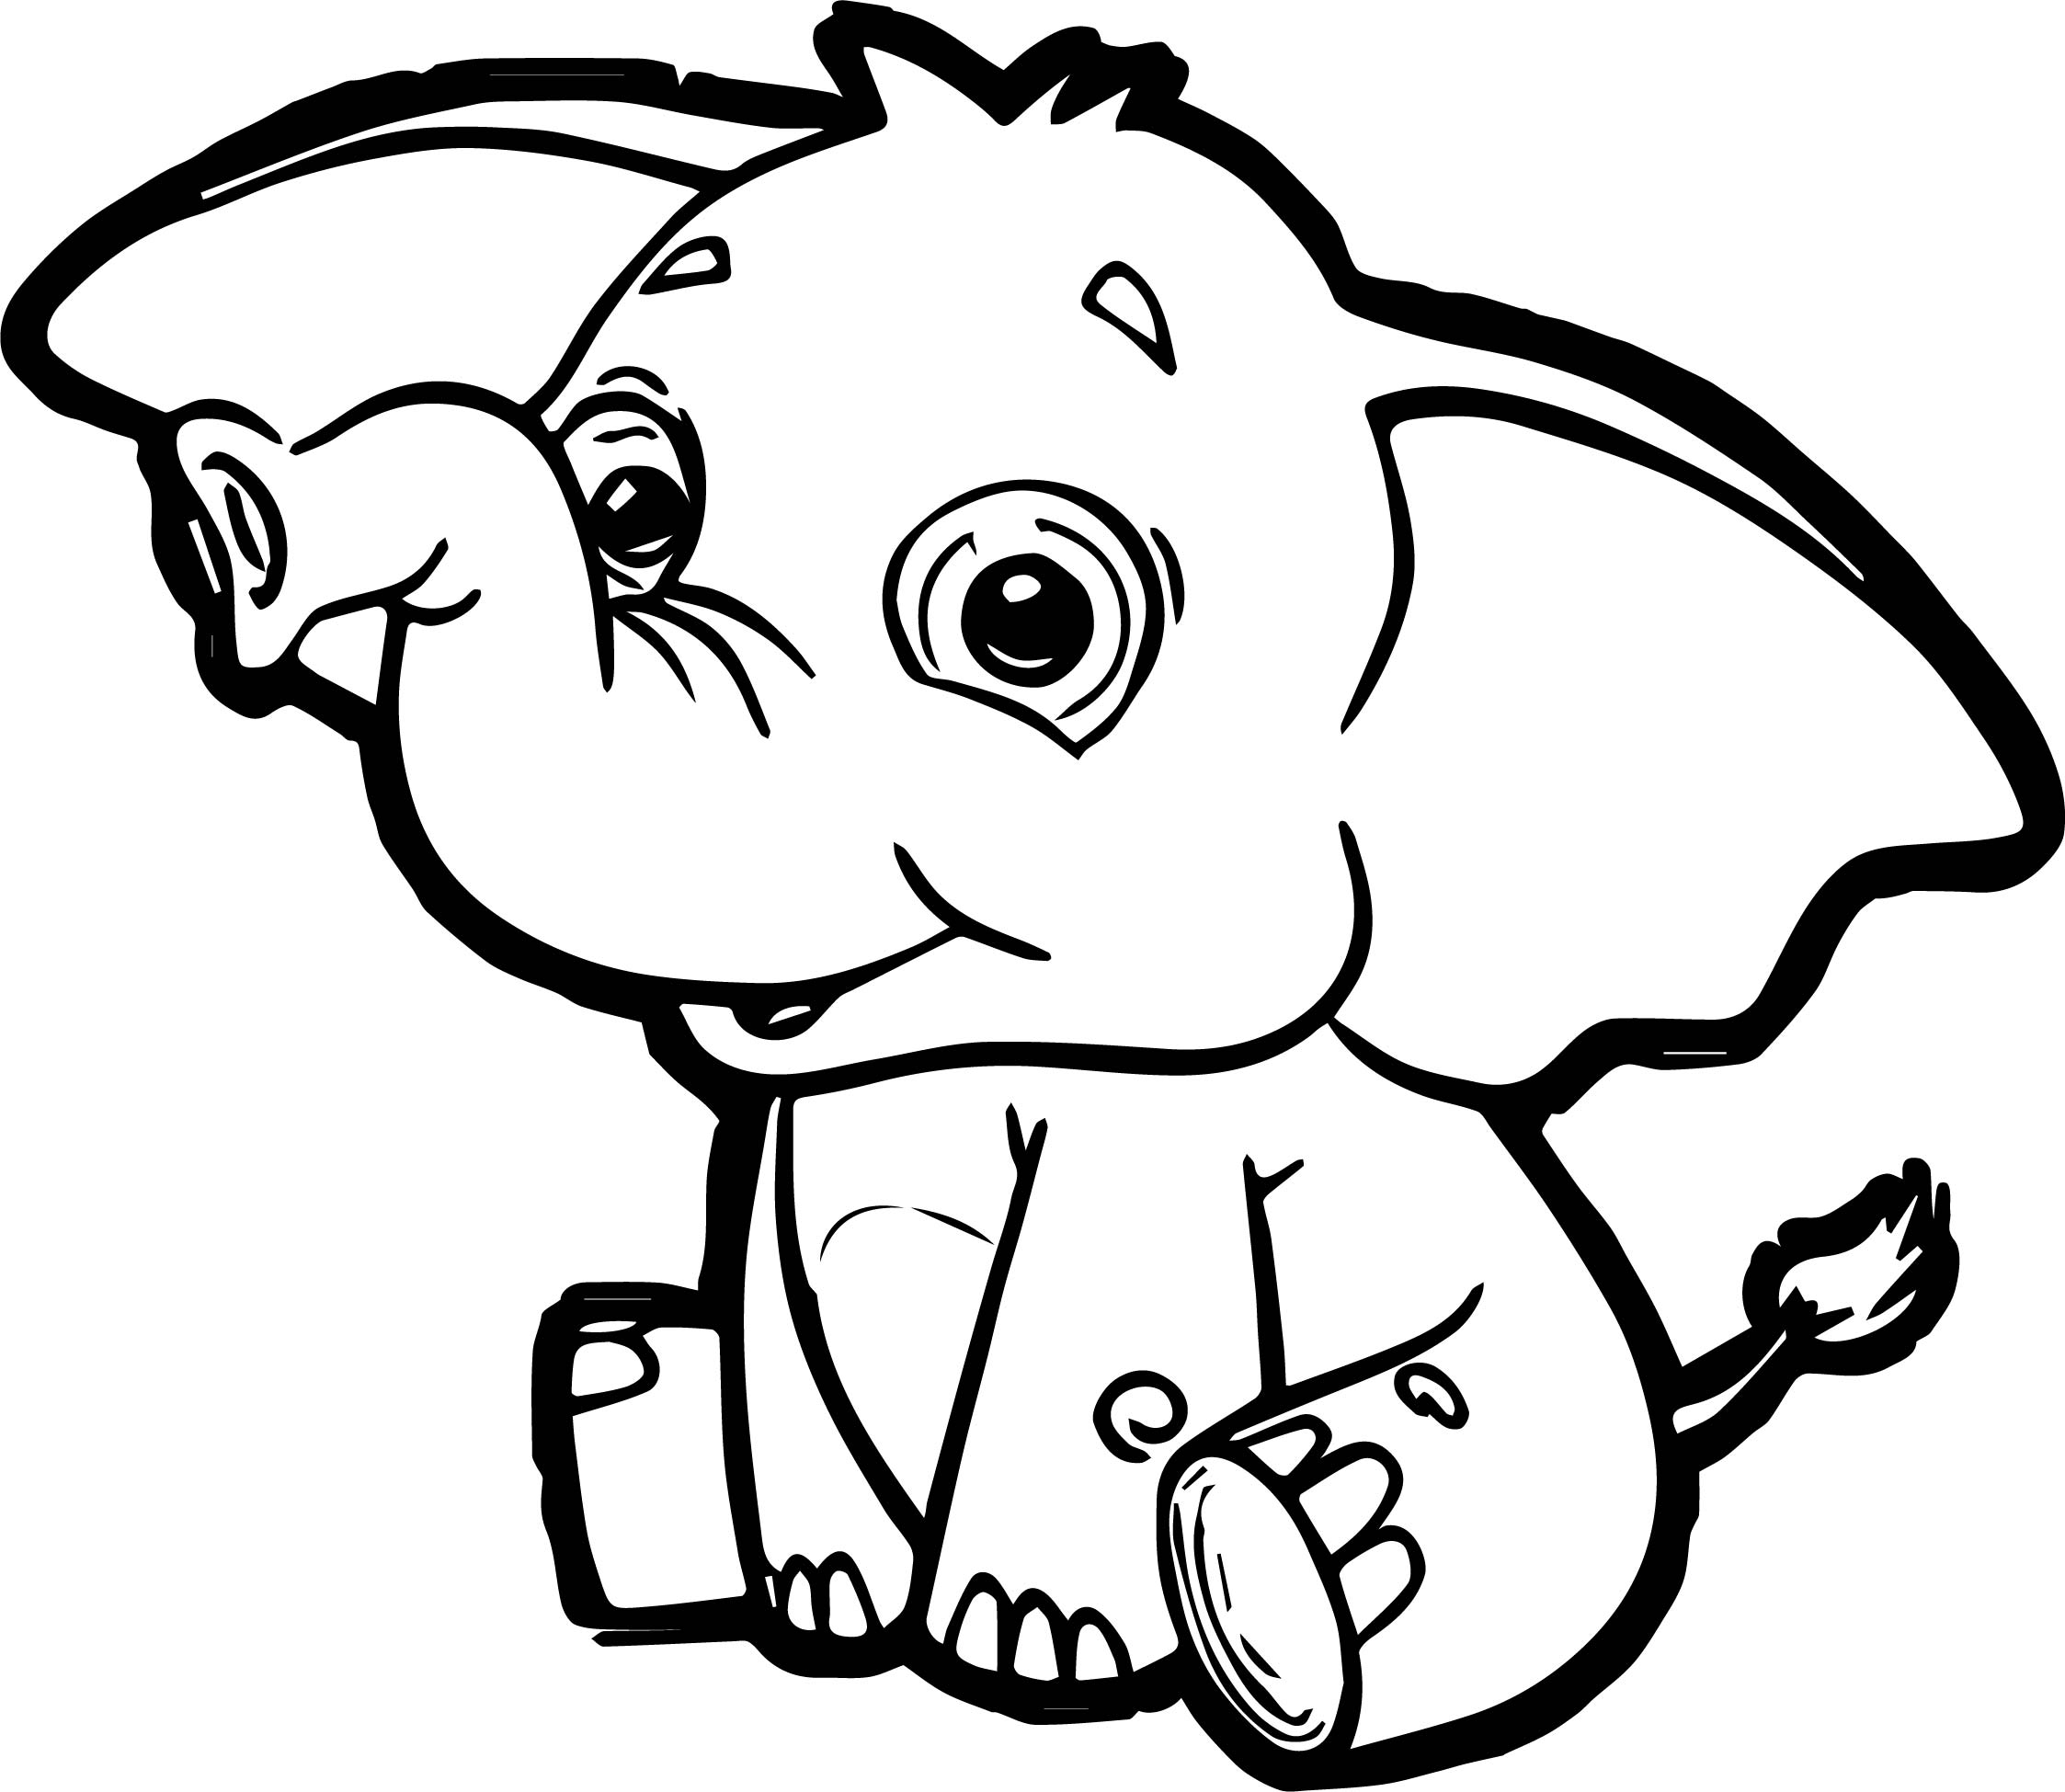 Dinosaur Elephant Coloring Page